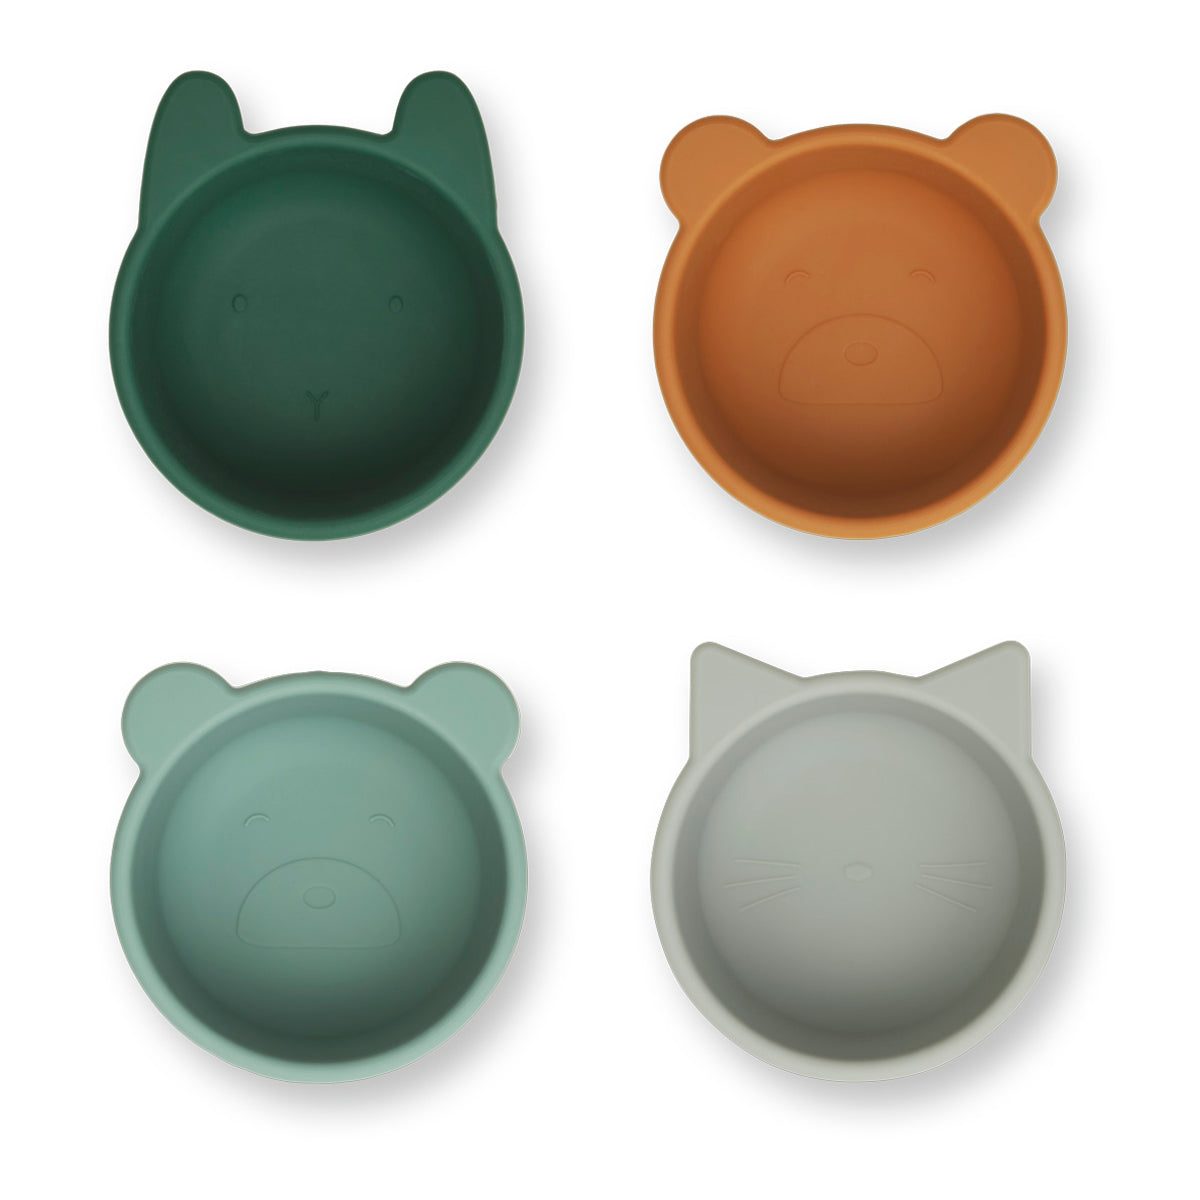 Liewood Malene Silicone Bowl 4 Pack - Green multi mix